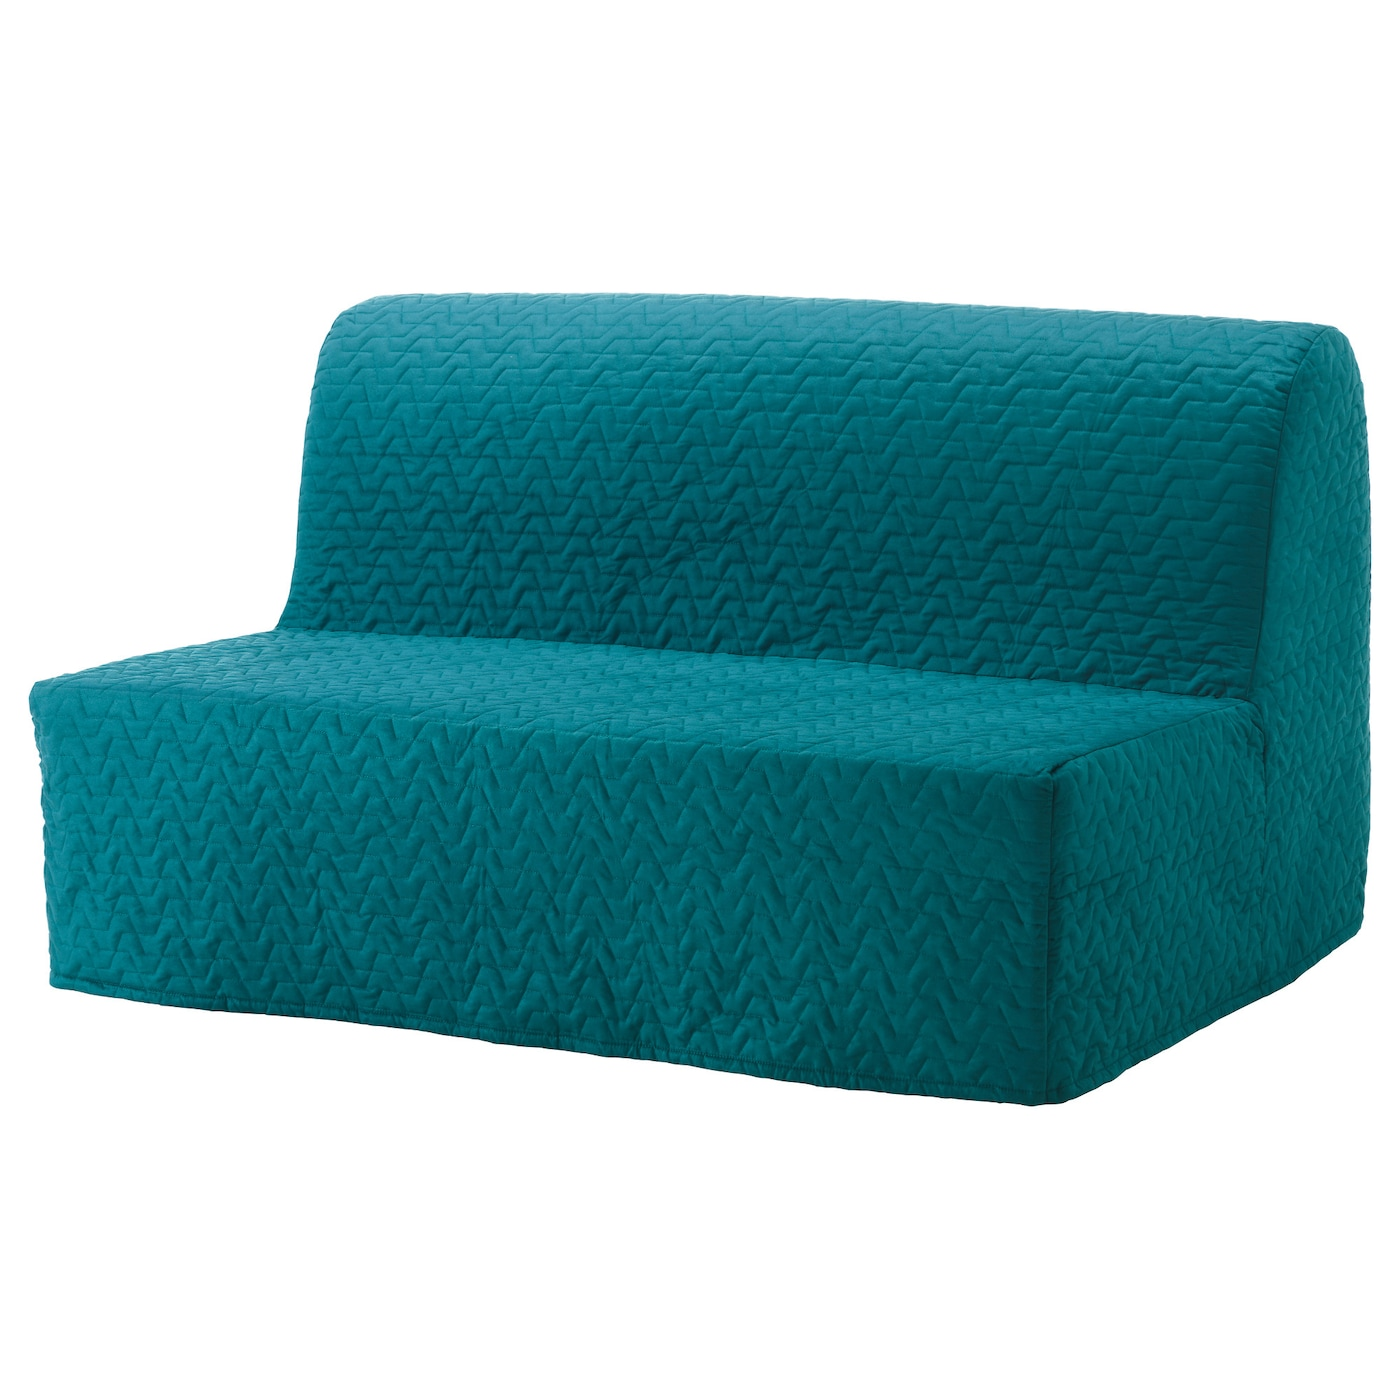 lycksele chair bed chiavari chairs rental price two seat sofa cover vallarum turquoise ikea